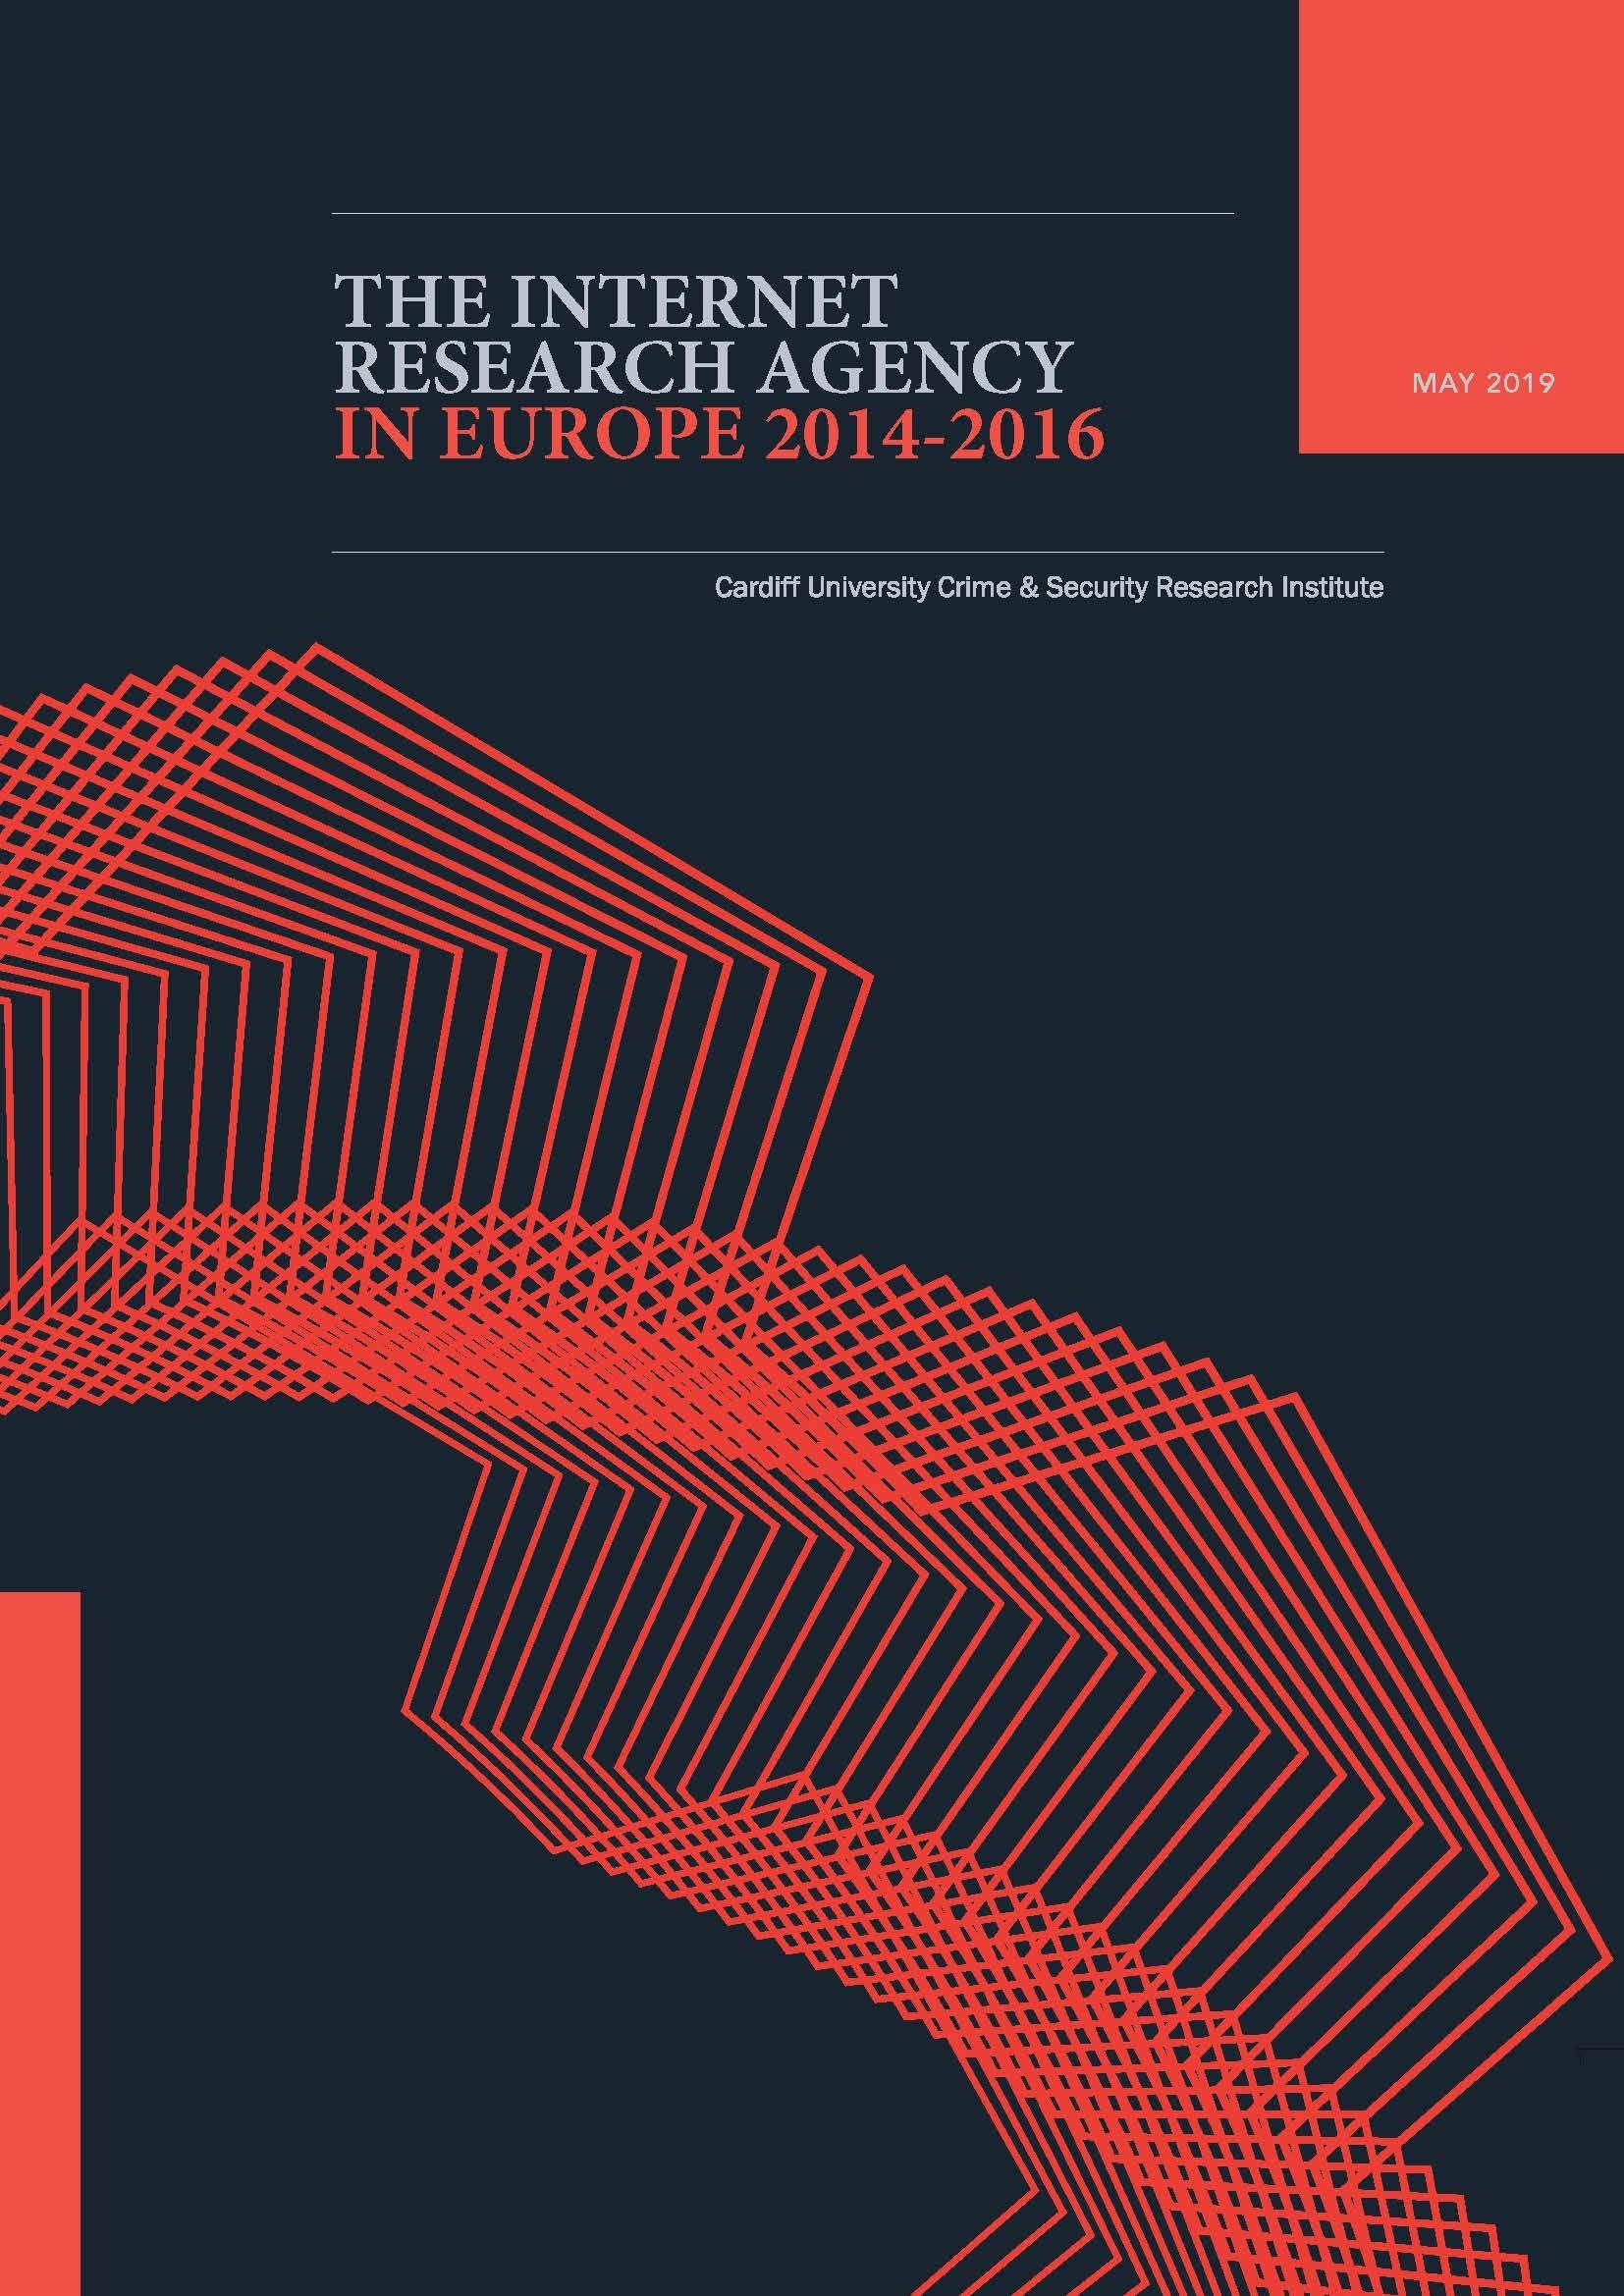 The Internet Research Agency In Europe 2014-2016 -